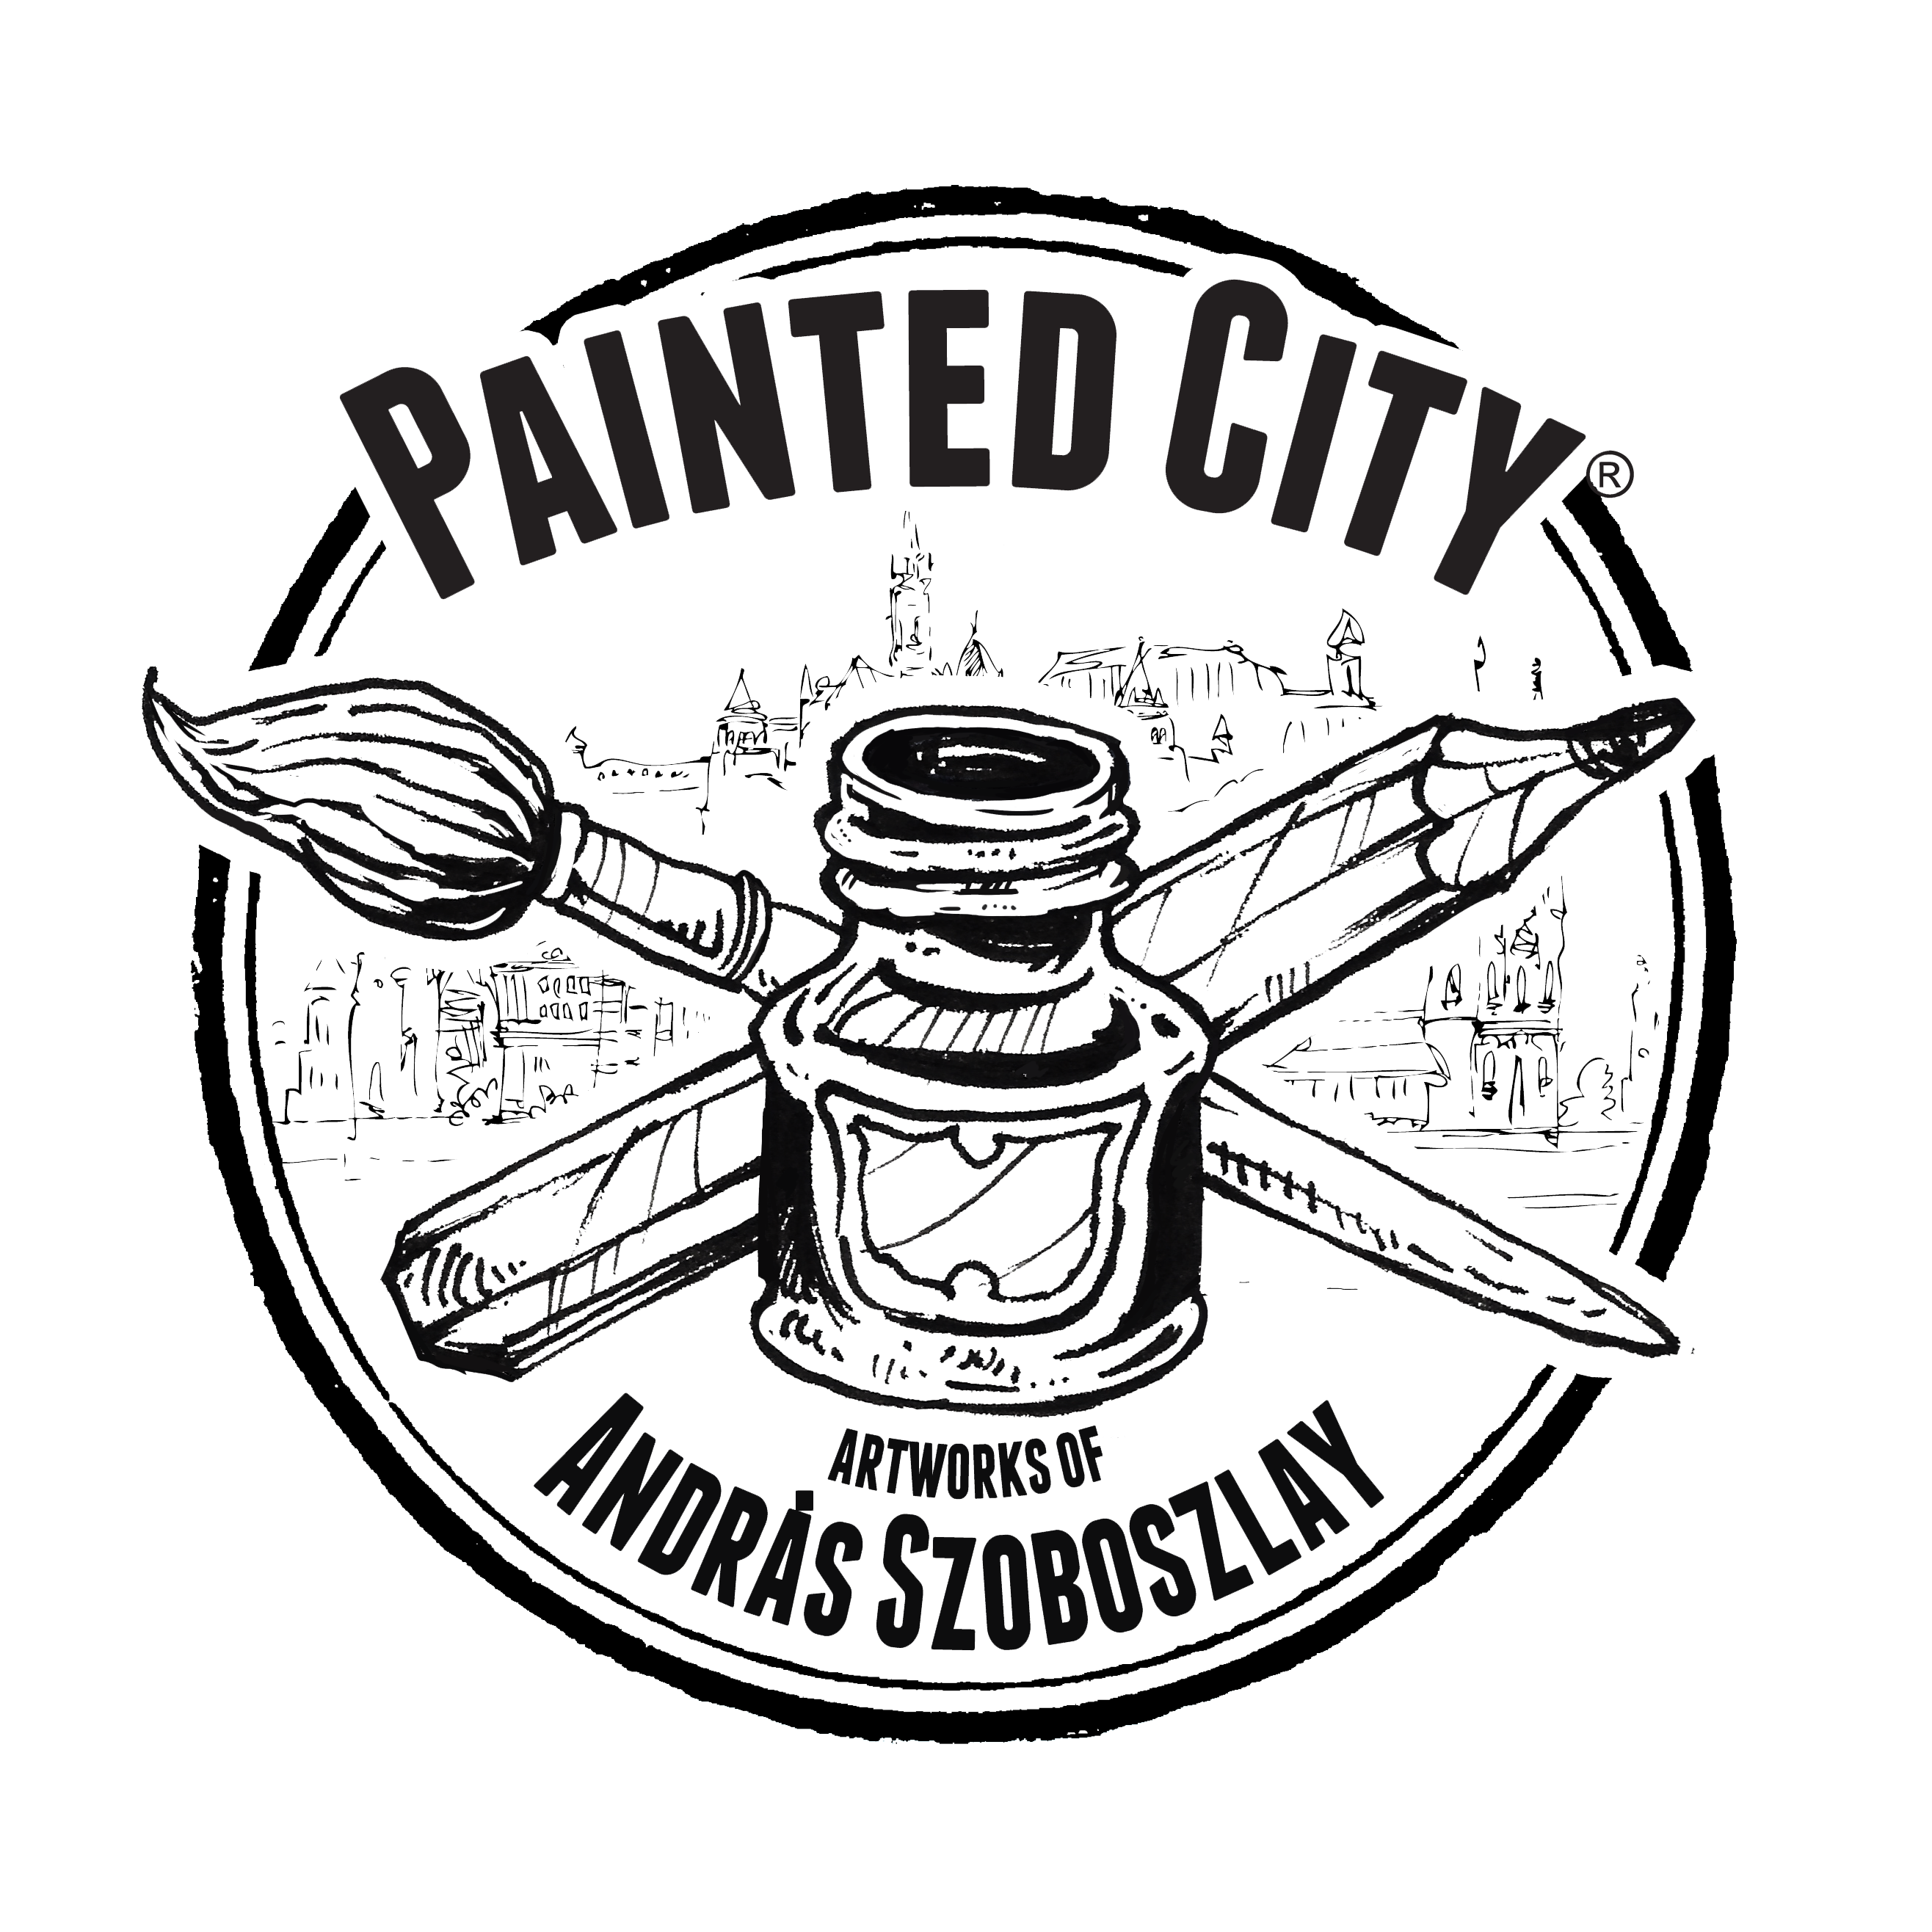 painted-City-pecset cbpng